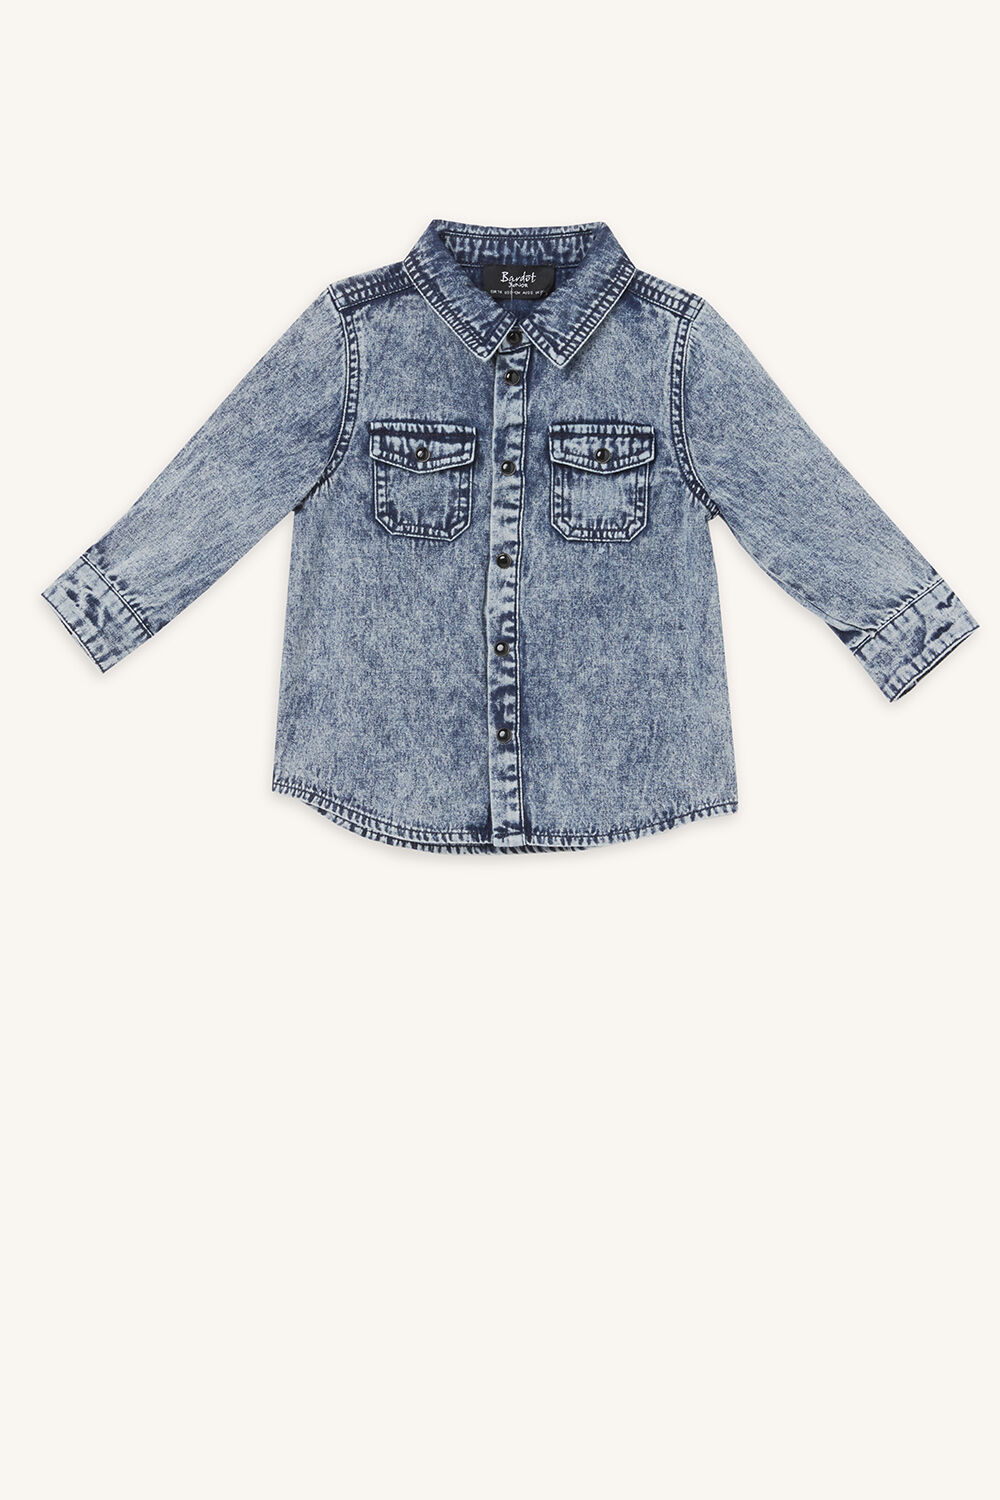 COREY DENIM SHIRT in colour BRIGHT WHITE